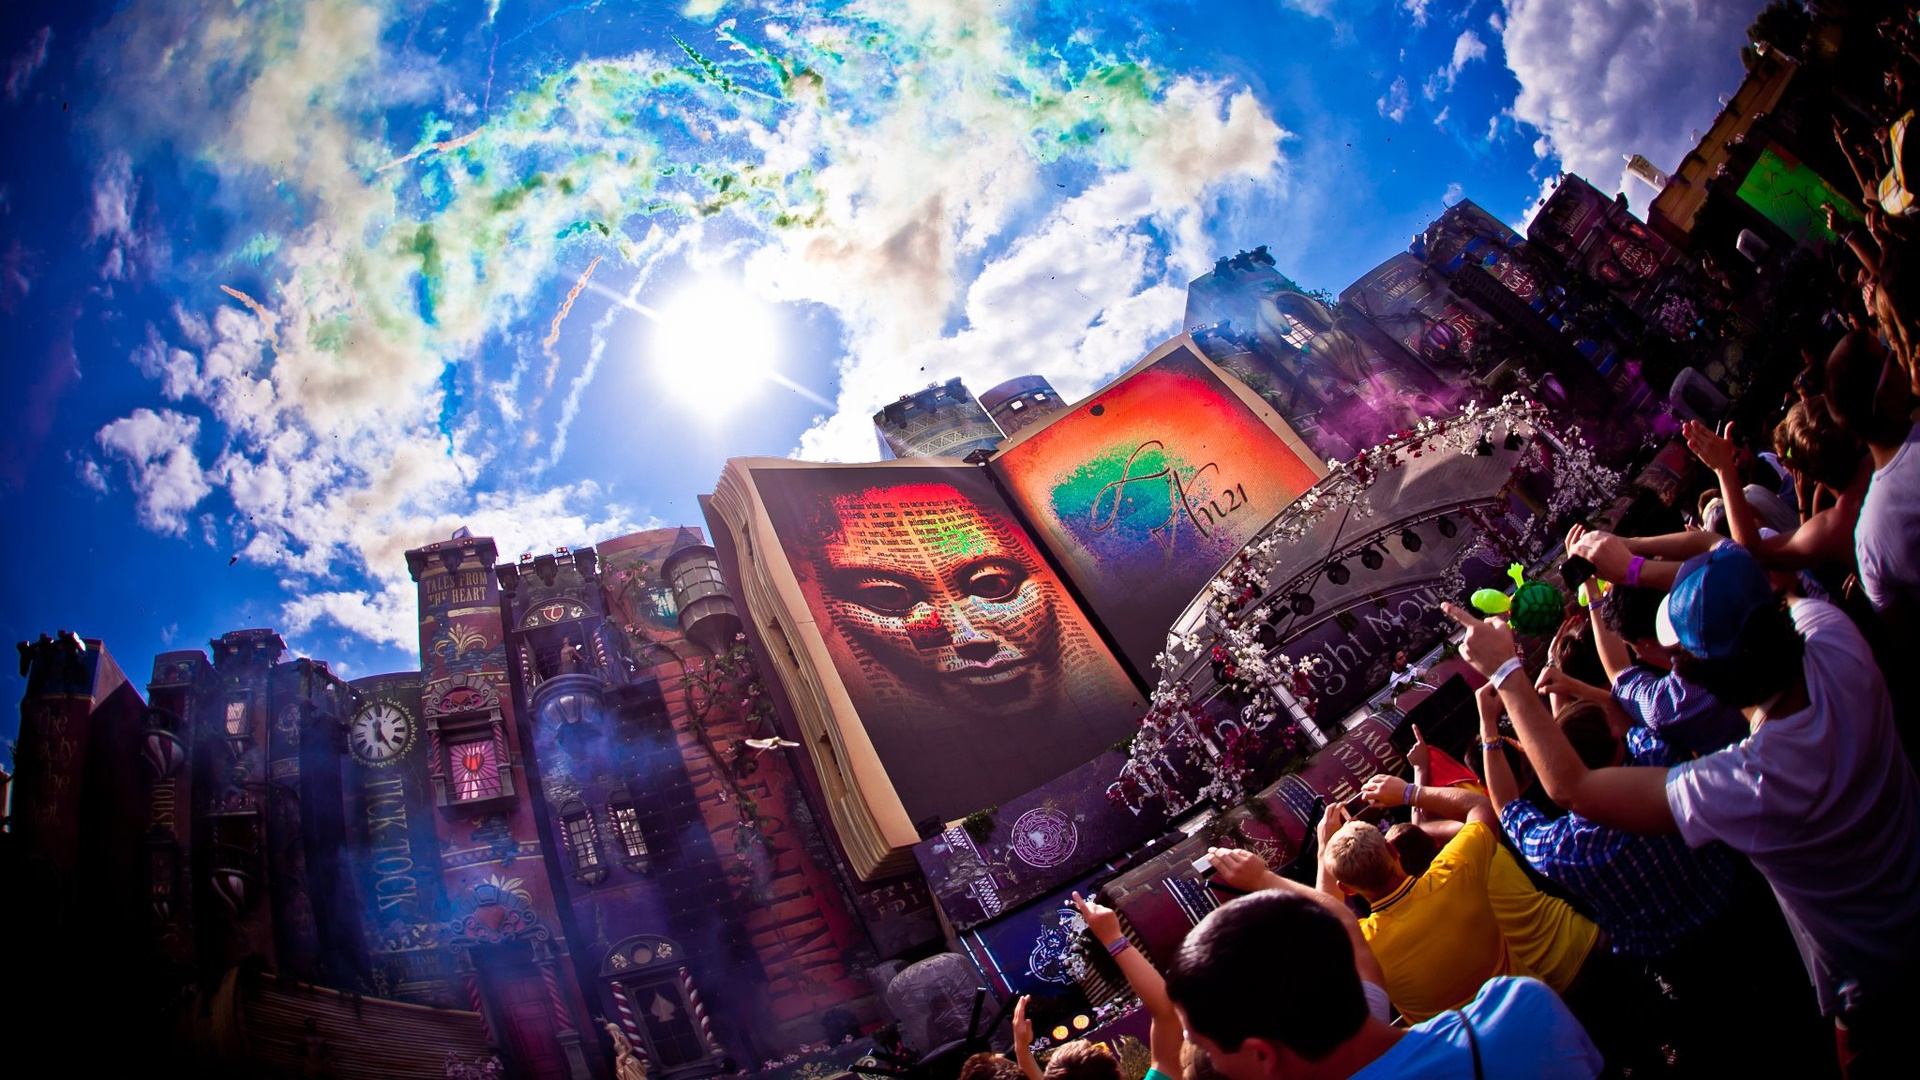 Tomorrowland festival wallpaper